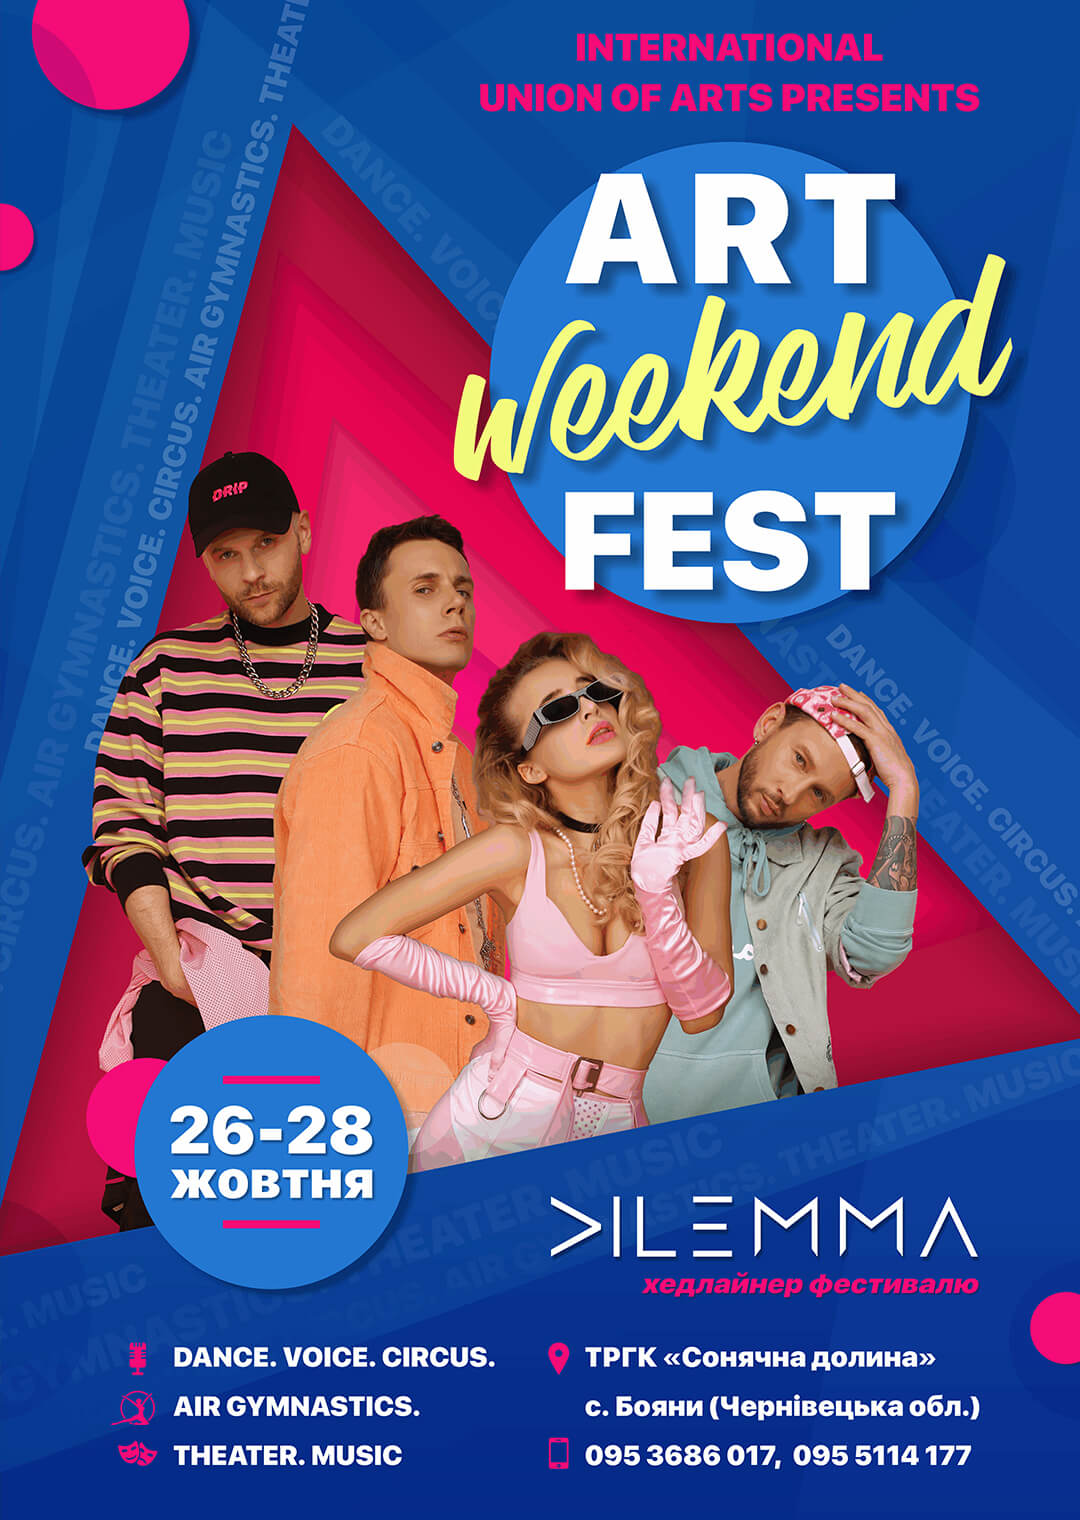 Art_Weekend_Fest_2019_2